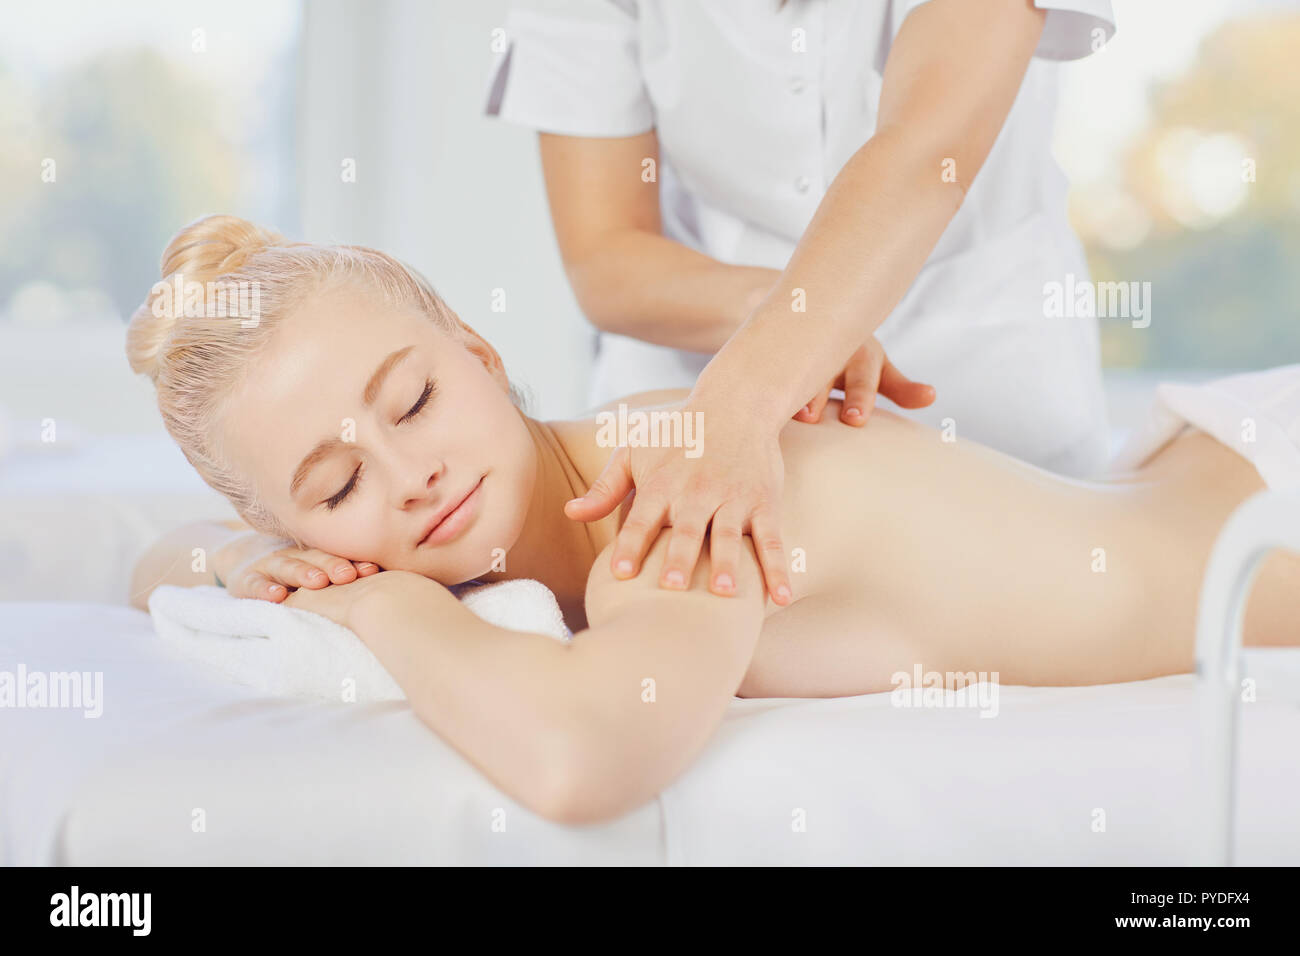 Salon Massage Body Body Body Massage Blond Woman In Spa Salon Doing Body Massage